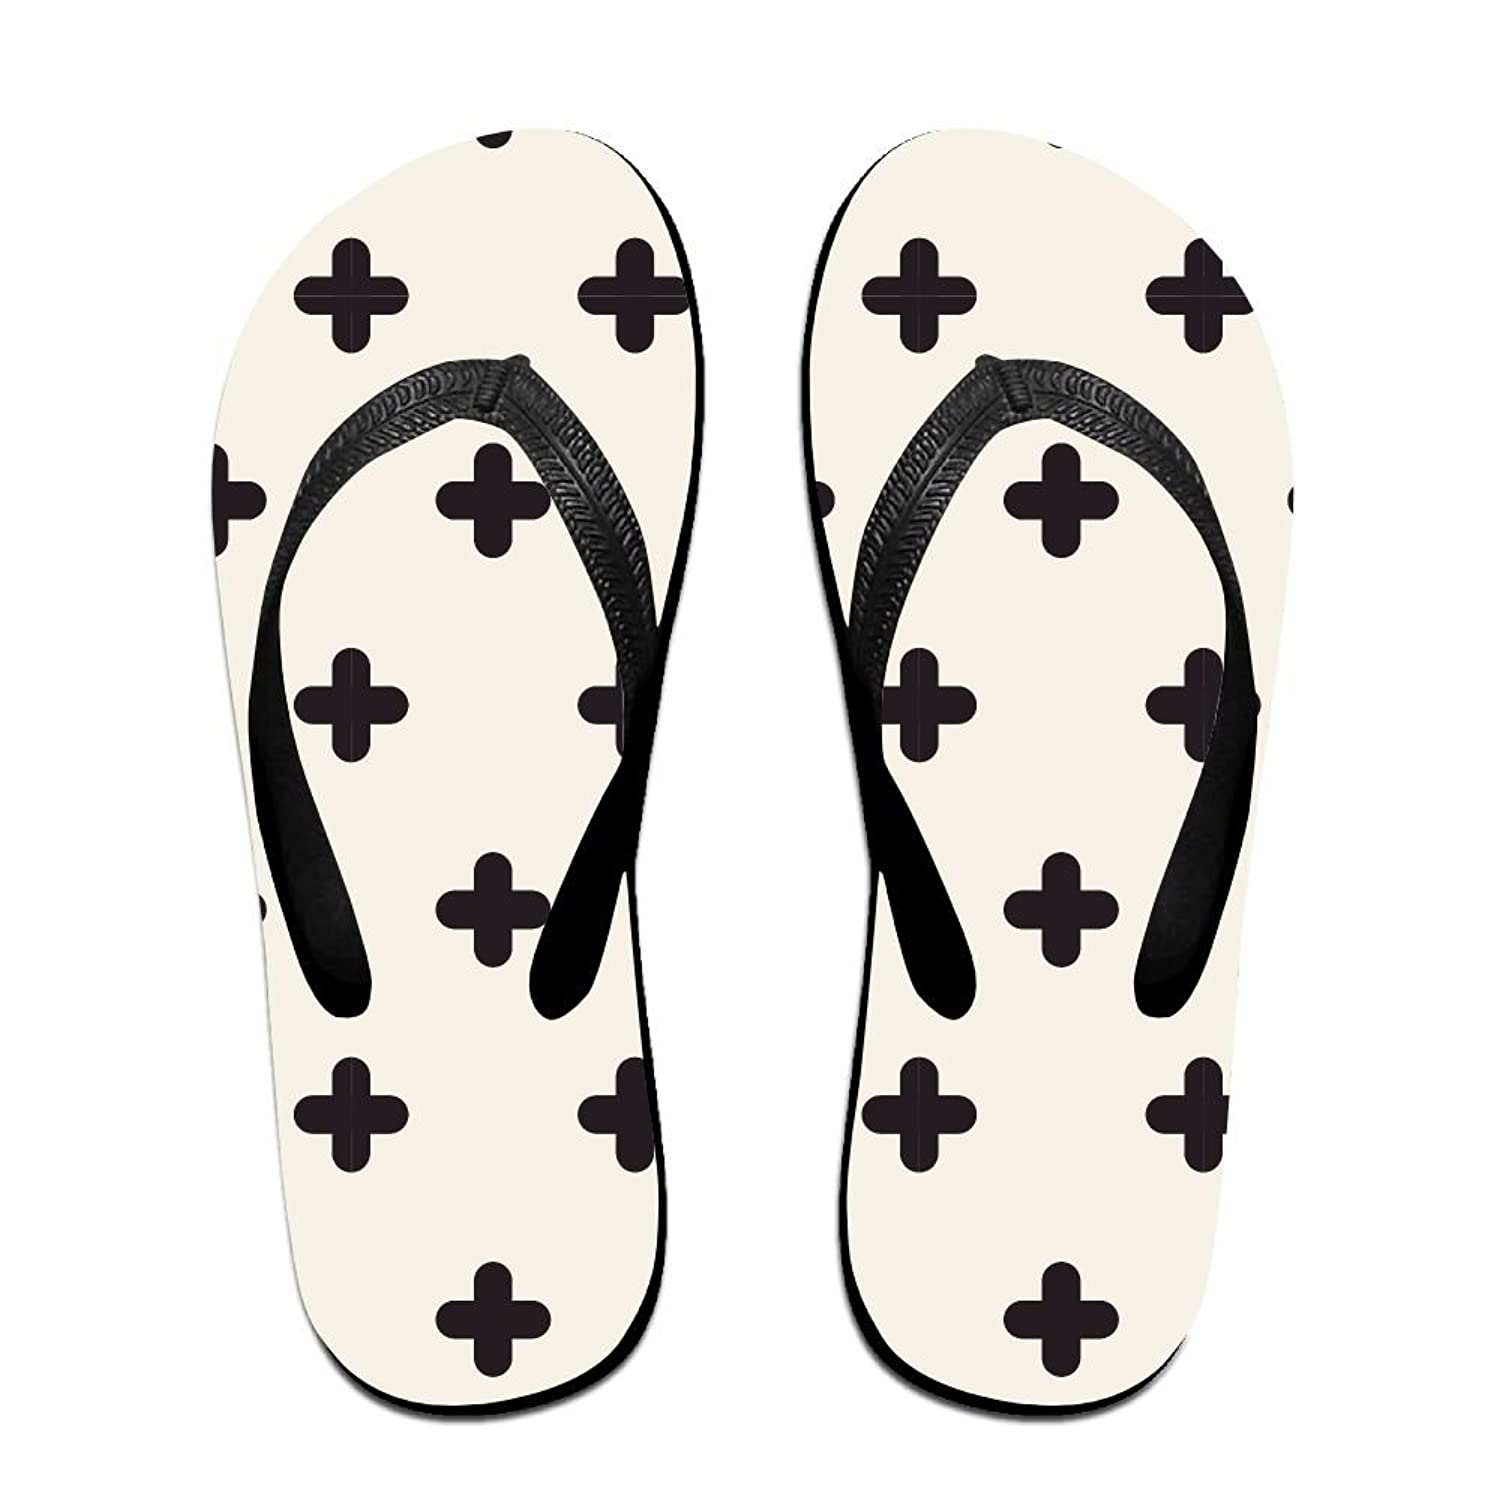 c2990f5a14a96 chic Black And White Geometric Patterns 1 Summer Strap Flip Flops ...